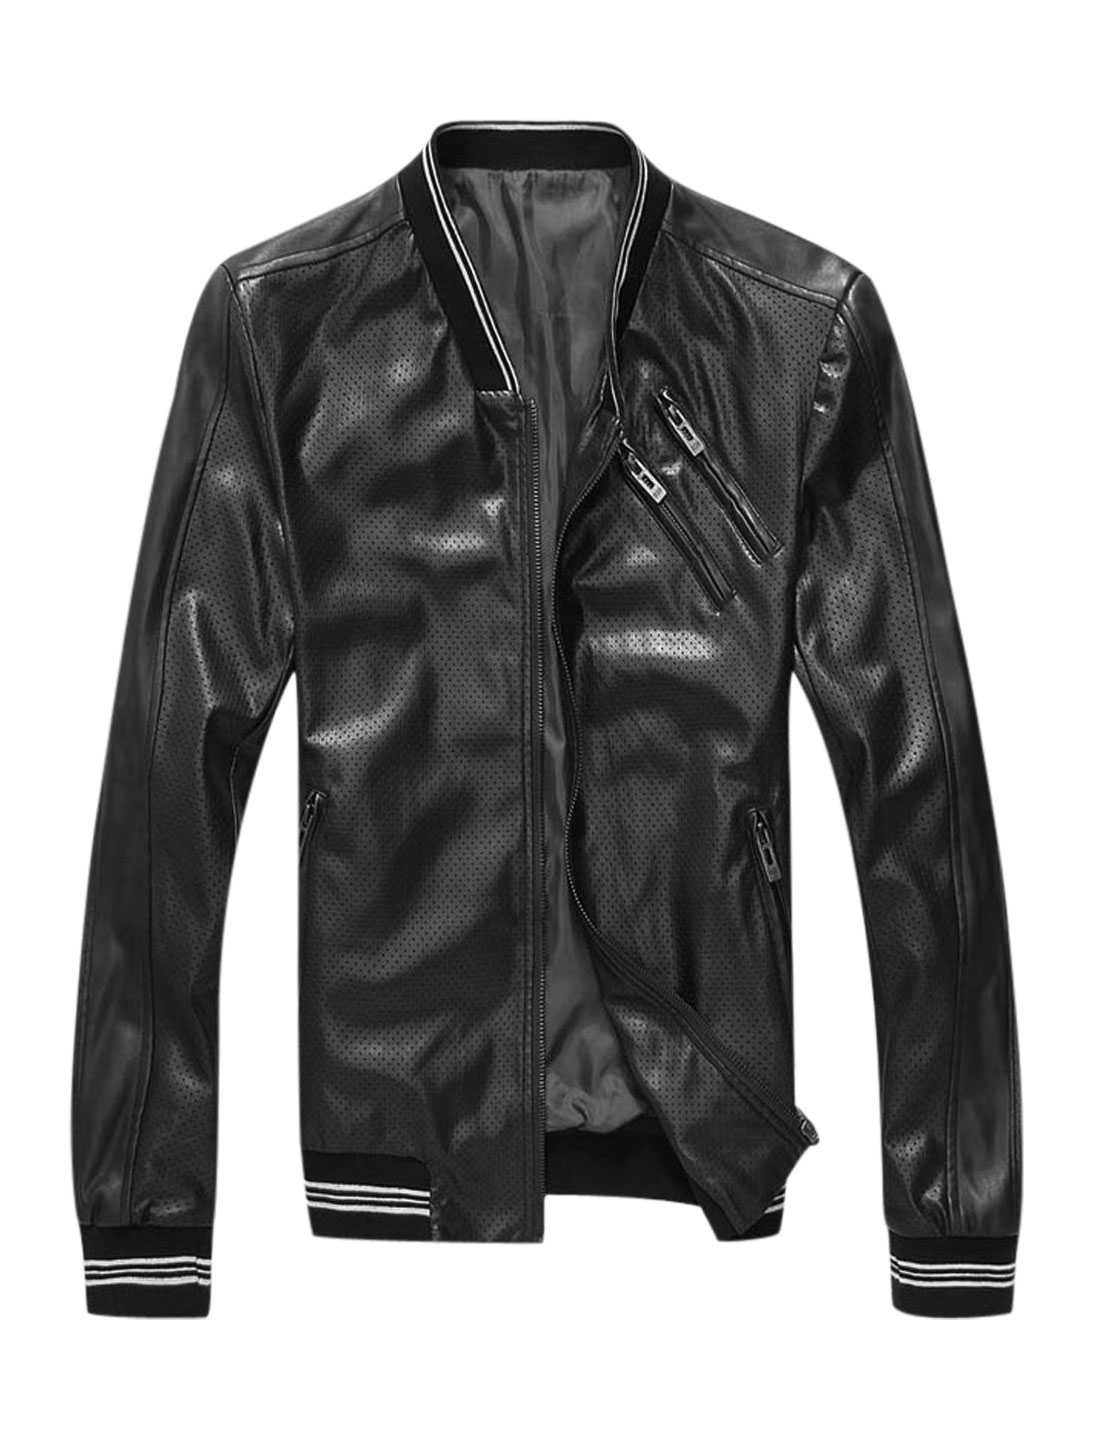 Man Ribbed Trim Hollow Out Imitation Leather Casual Jacket Black M